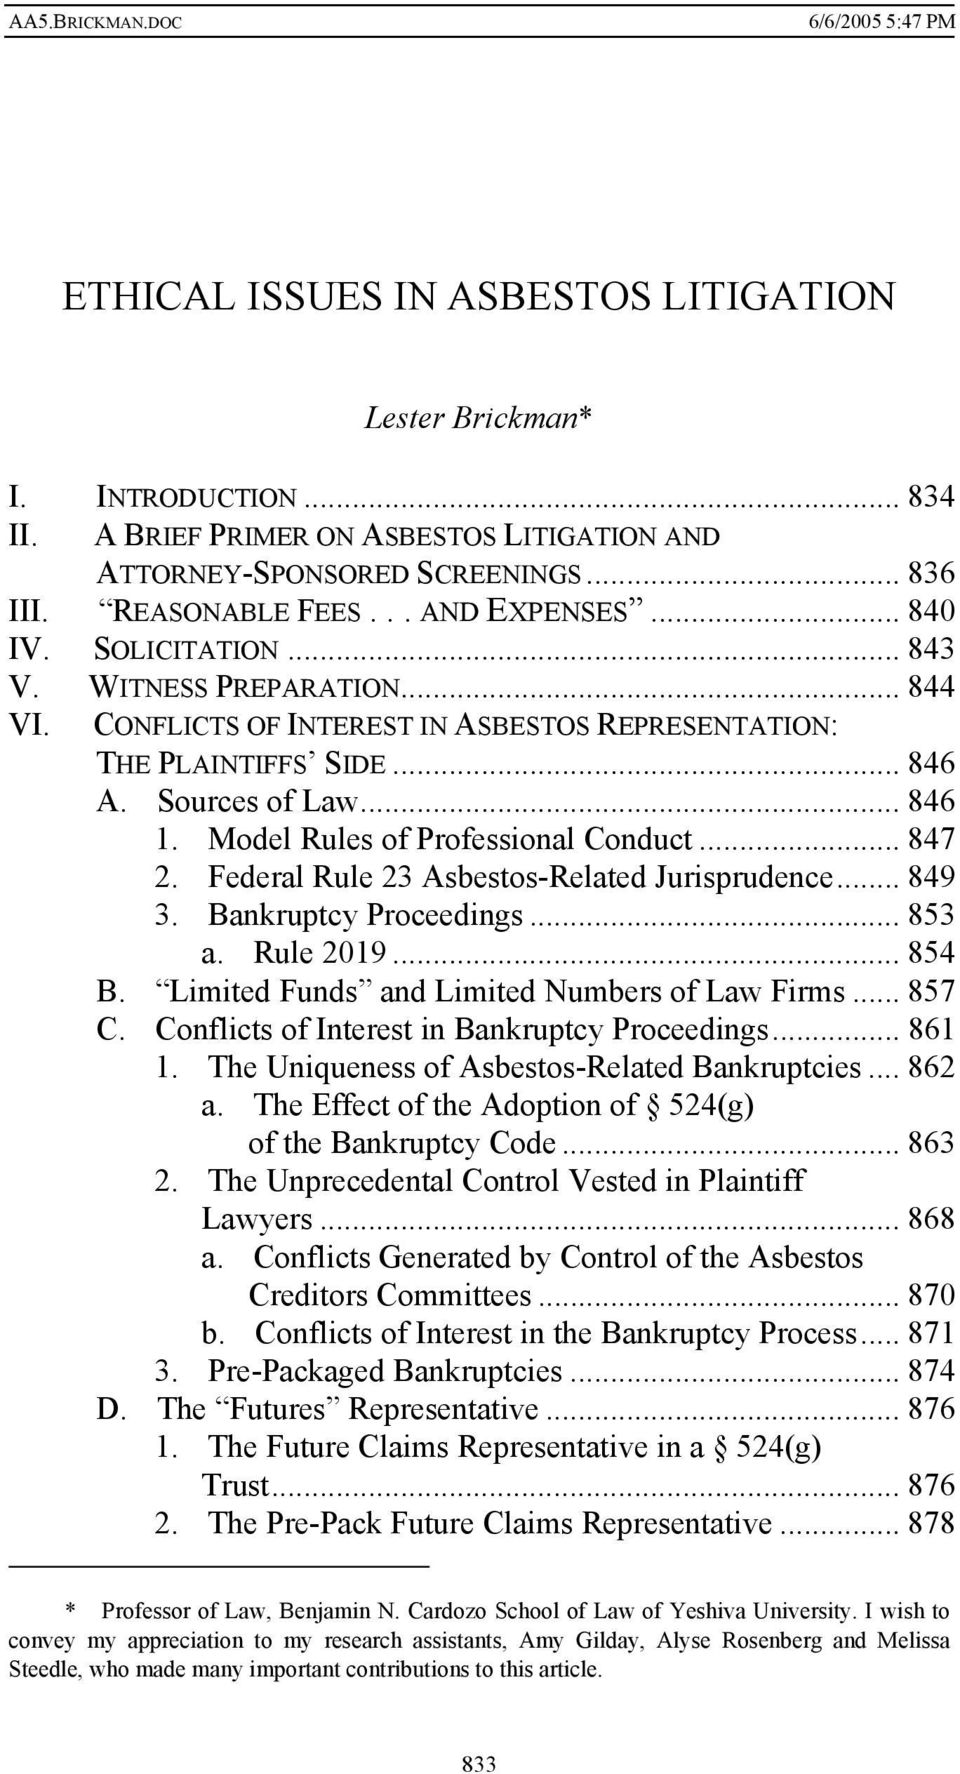 Model Rules of Professional Conduct... 847 2. Federal Rule 23 Asbestos-Related Jurisprudence... 849 3. Bankruptcy Proceedings... 853 a. Rule 2019... 854 B.